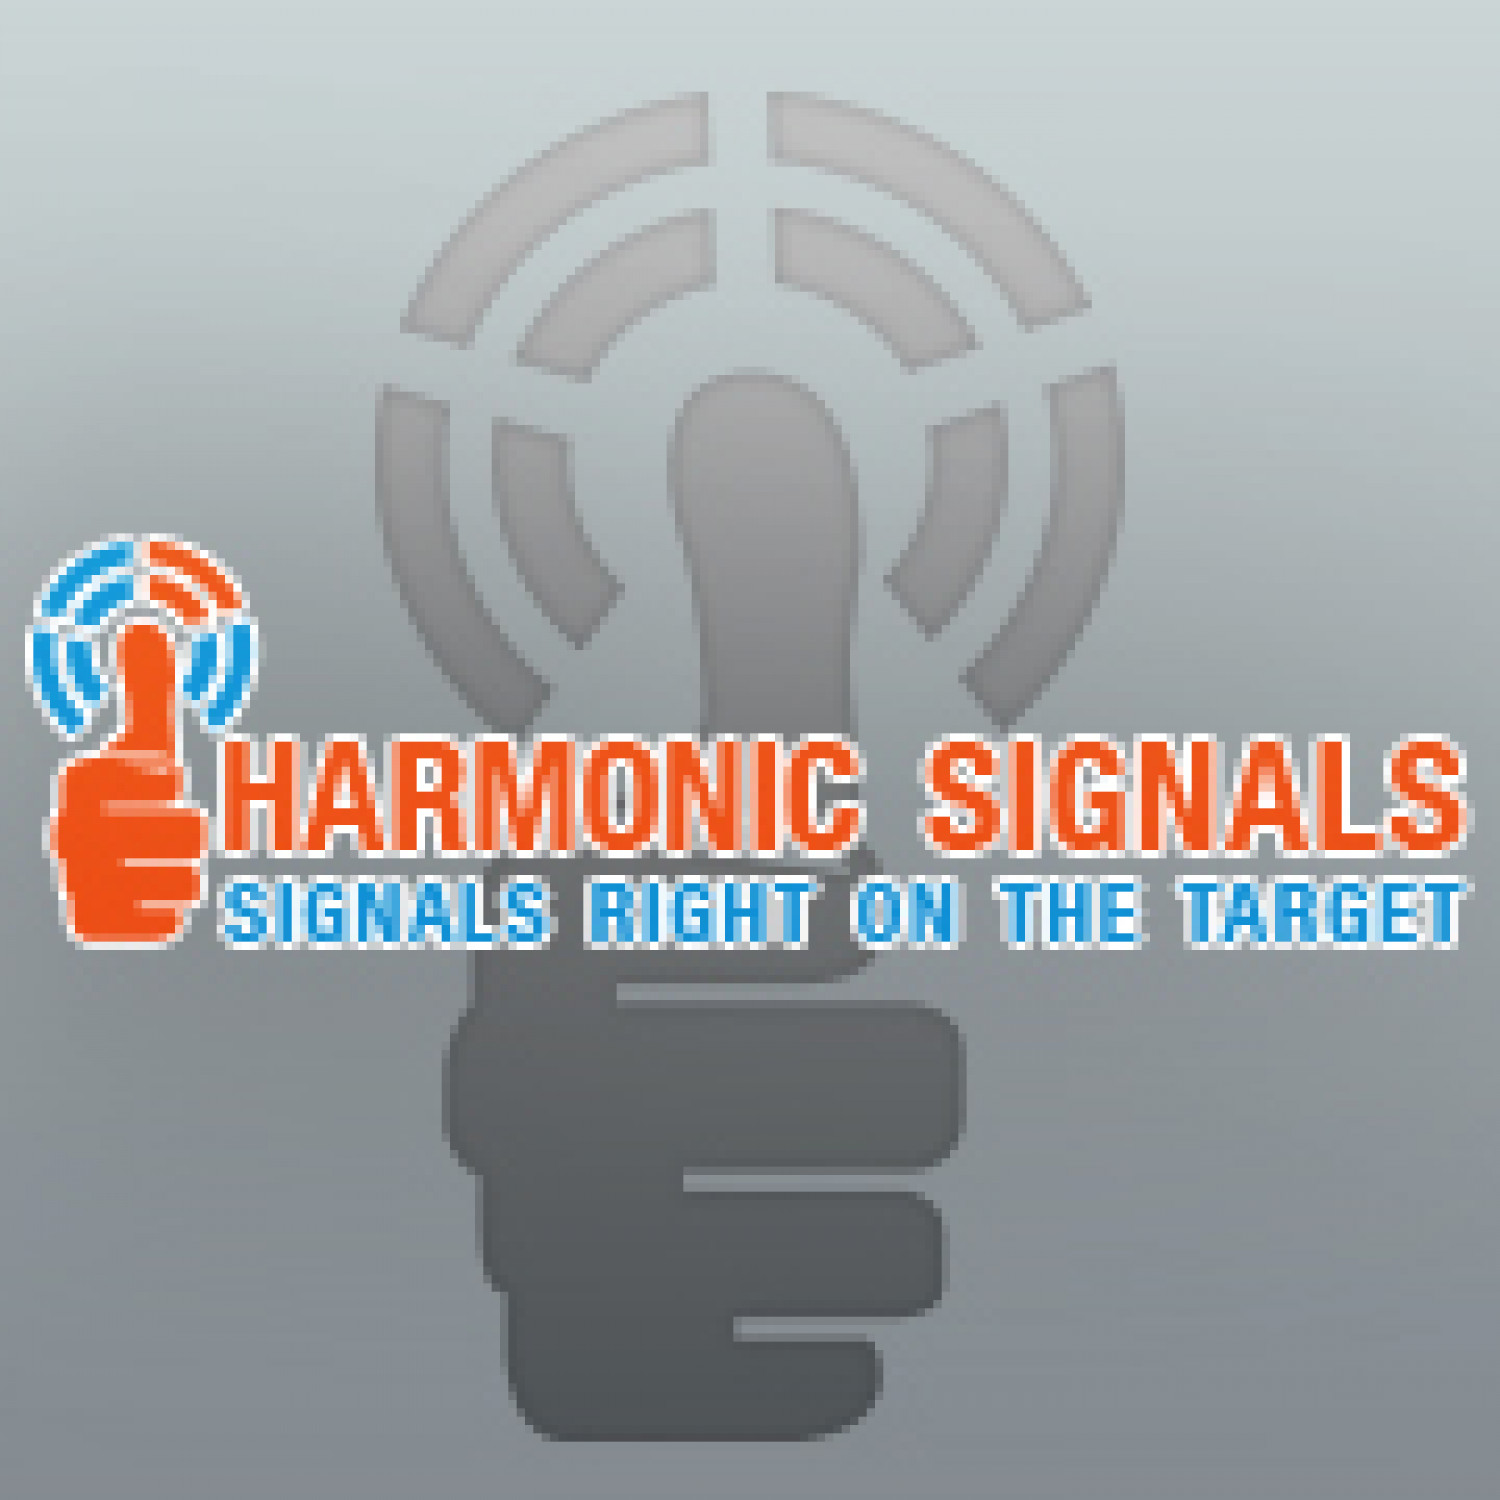 signal Infographic